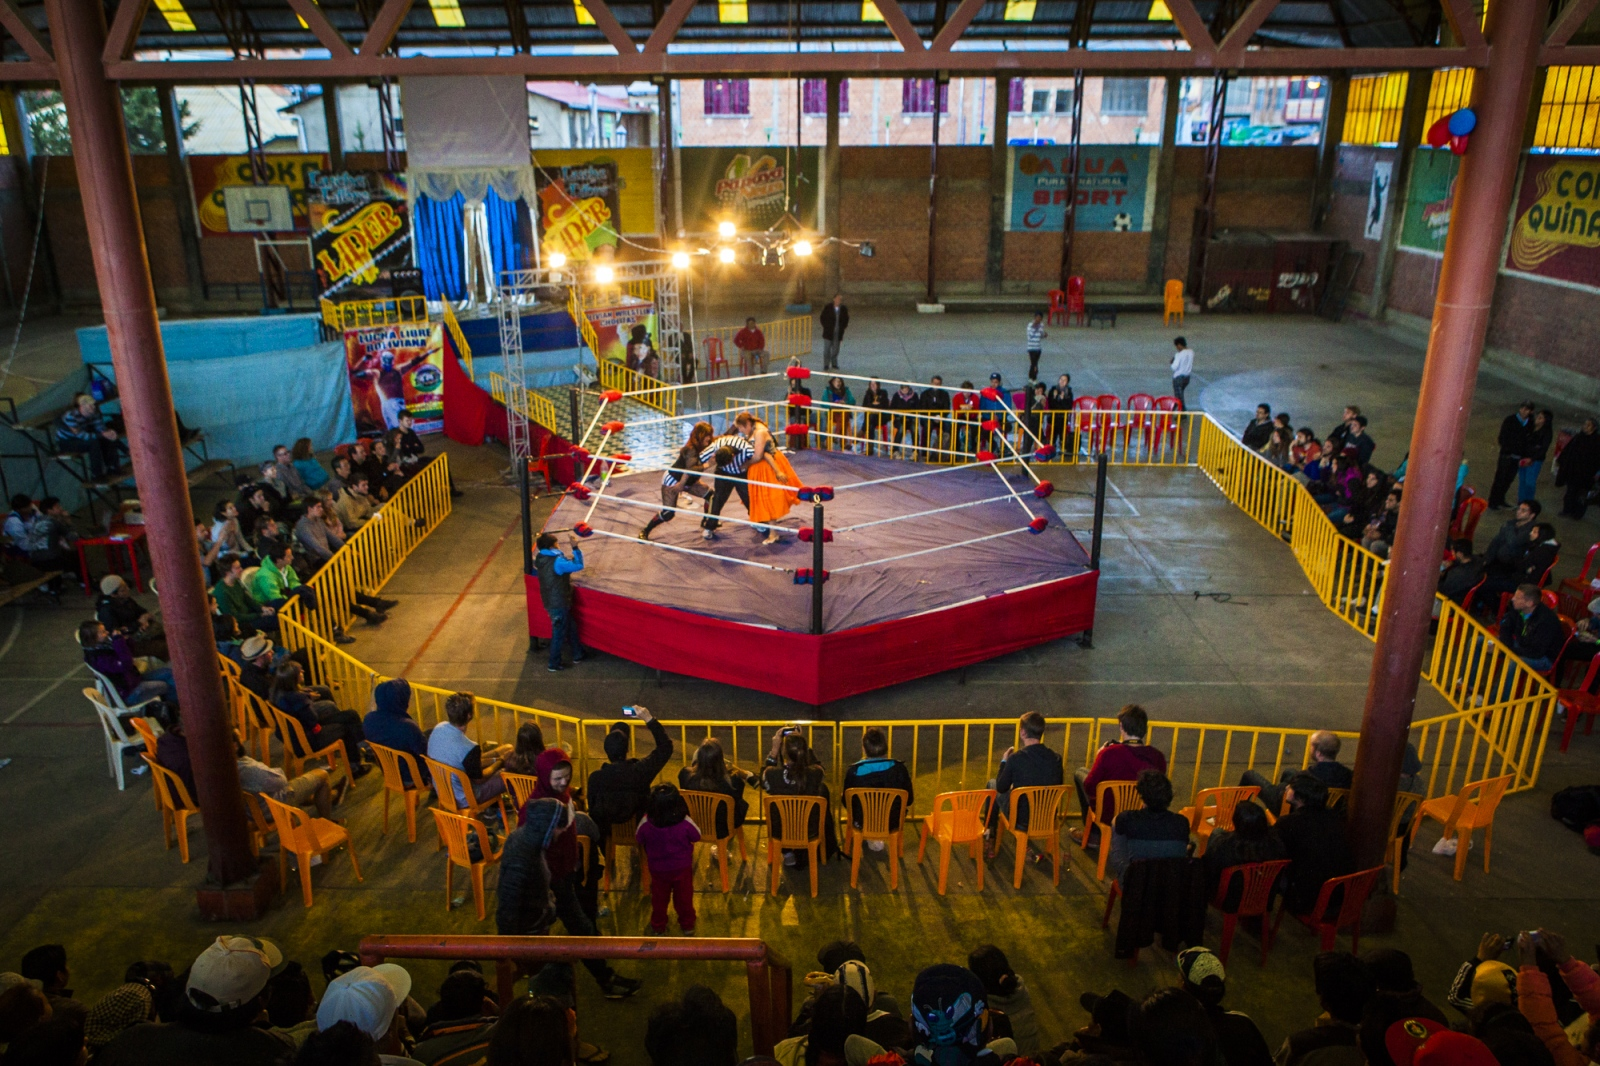 The ring of the 12th October Sports Complex, where cholitas fights happens every Sunday. The fights attract many Bolivians and tourists. Tourists pay five times higher prices to sit in the front rows on plastic chairs, while the locals sit on the cement stands.